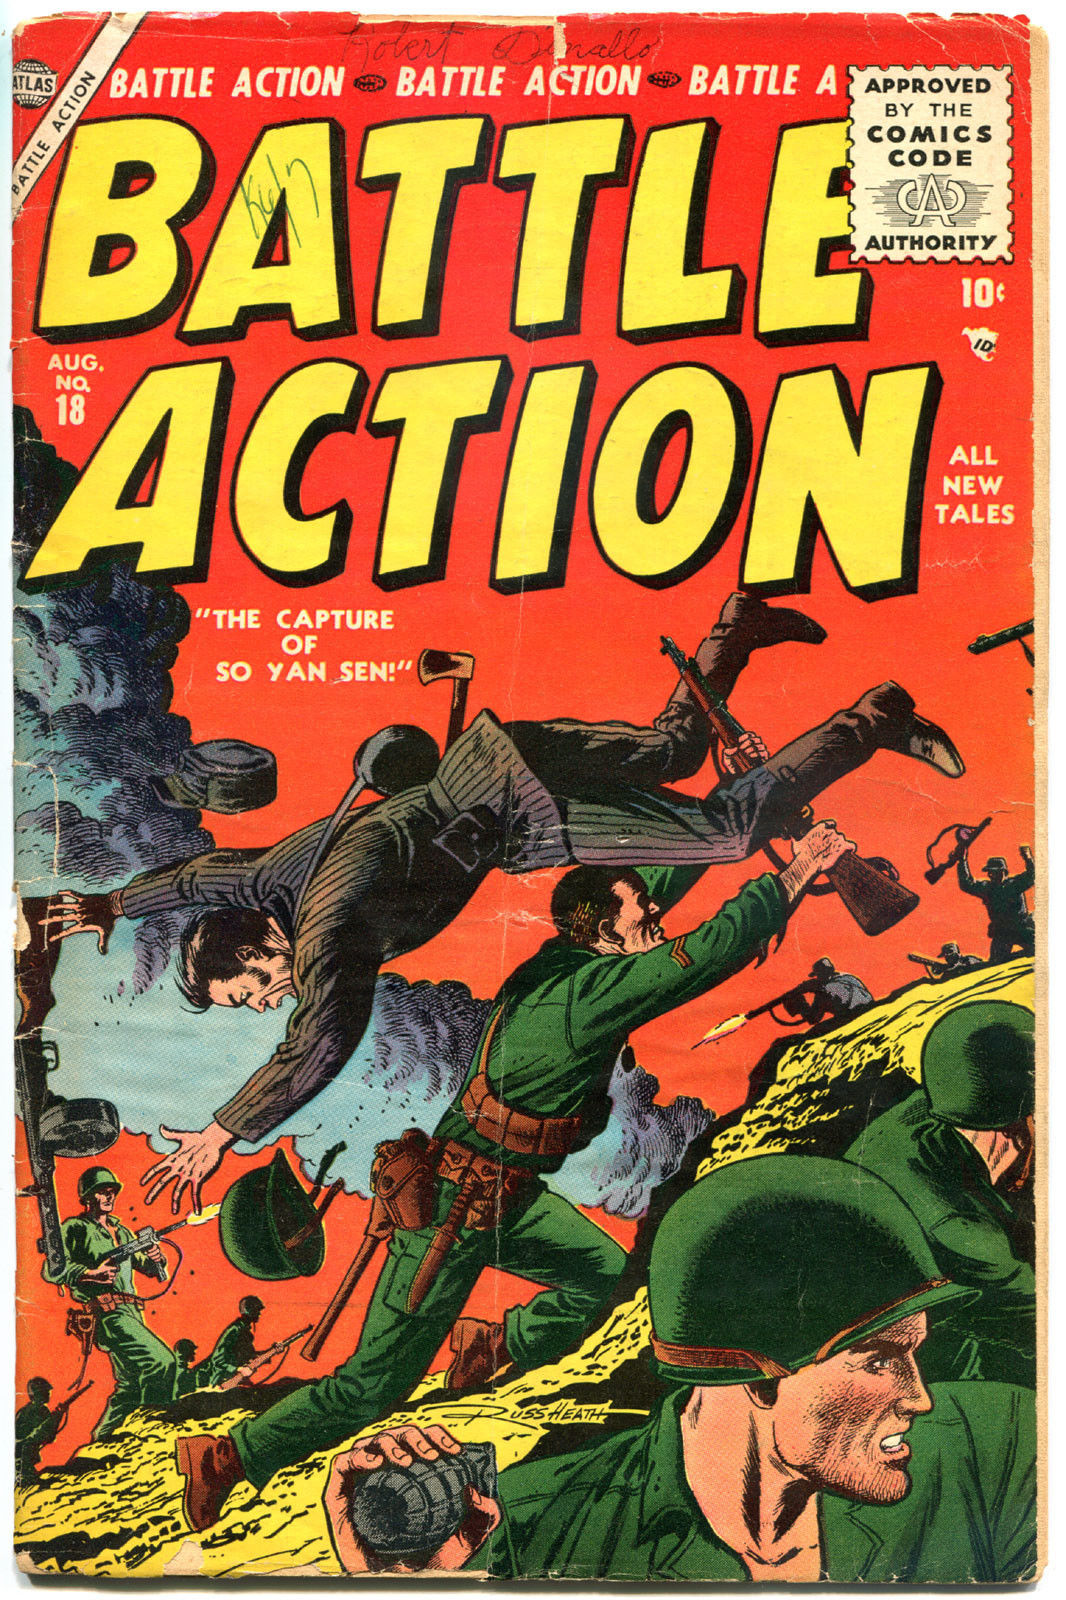 BATTLE ACTION #18, VG-, 1952, Golden Age, Atlas, Russ Heath, more in store